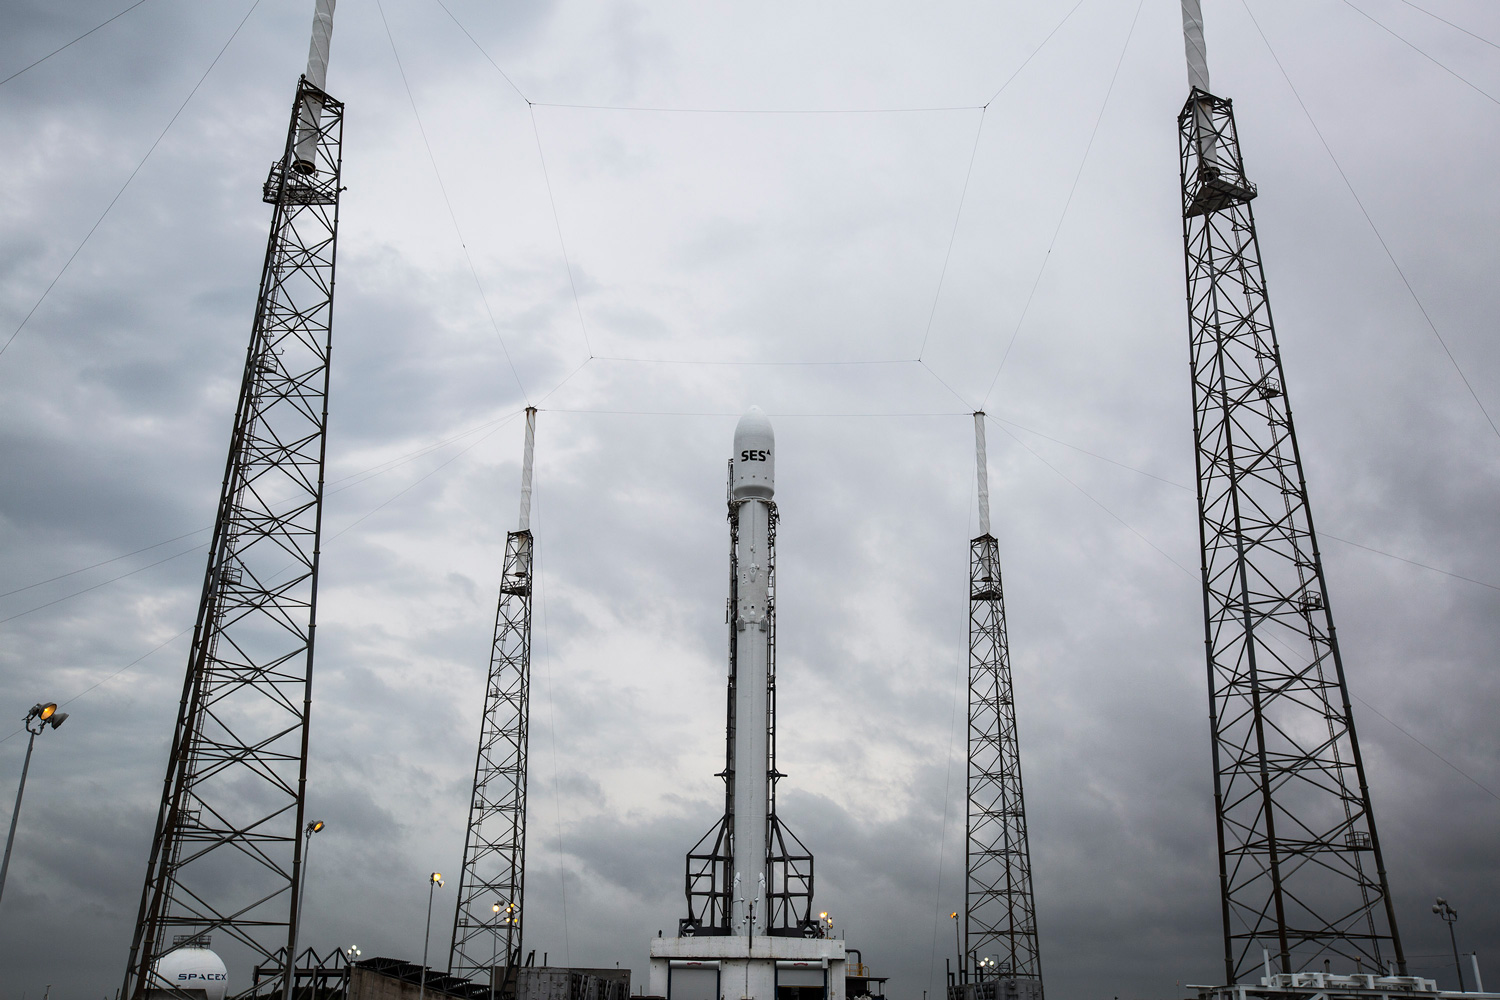 SpaceX aims to resume launches in November, president says